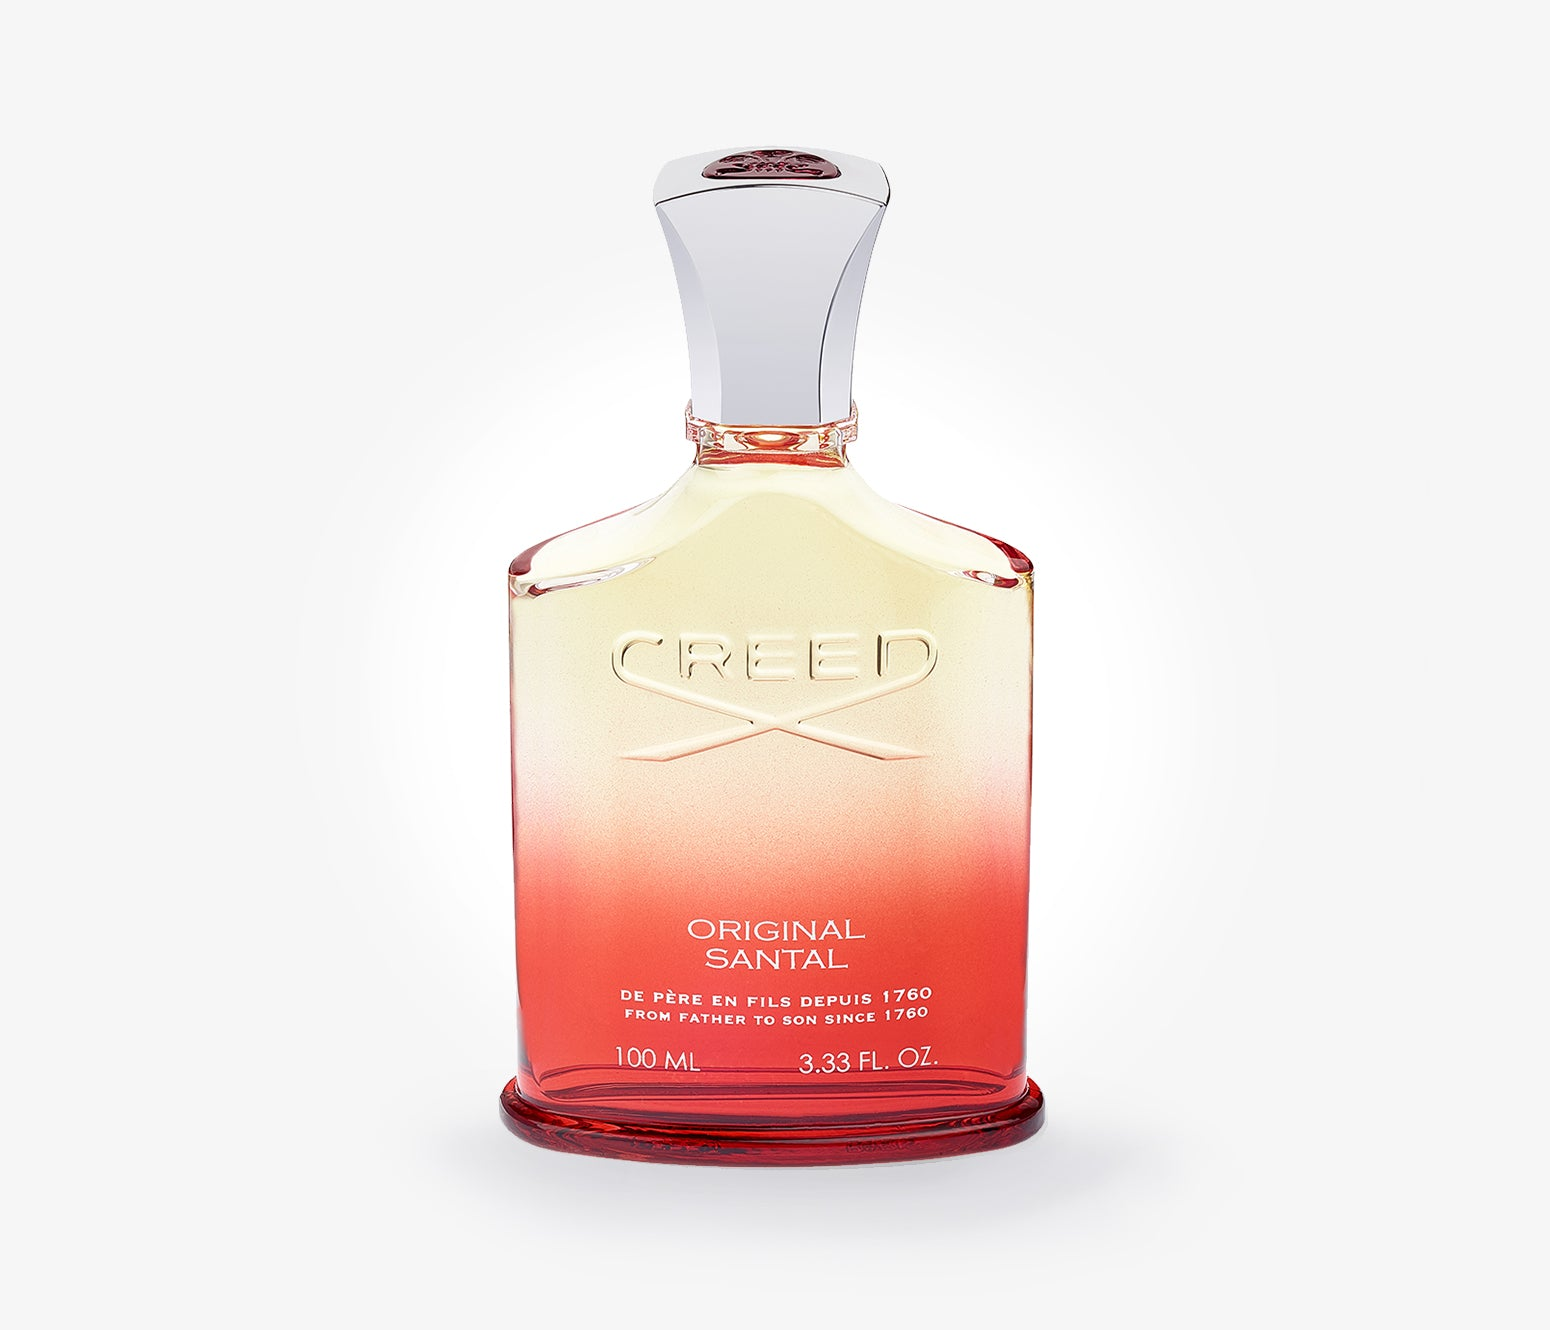 Creed - Original Santal - 50ml - KXY001 - product image - Fragrance - Les Senteurs